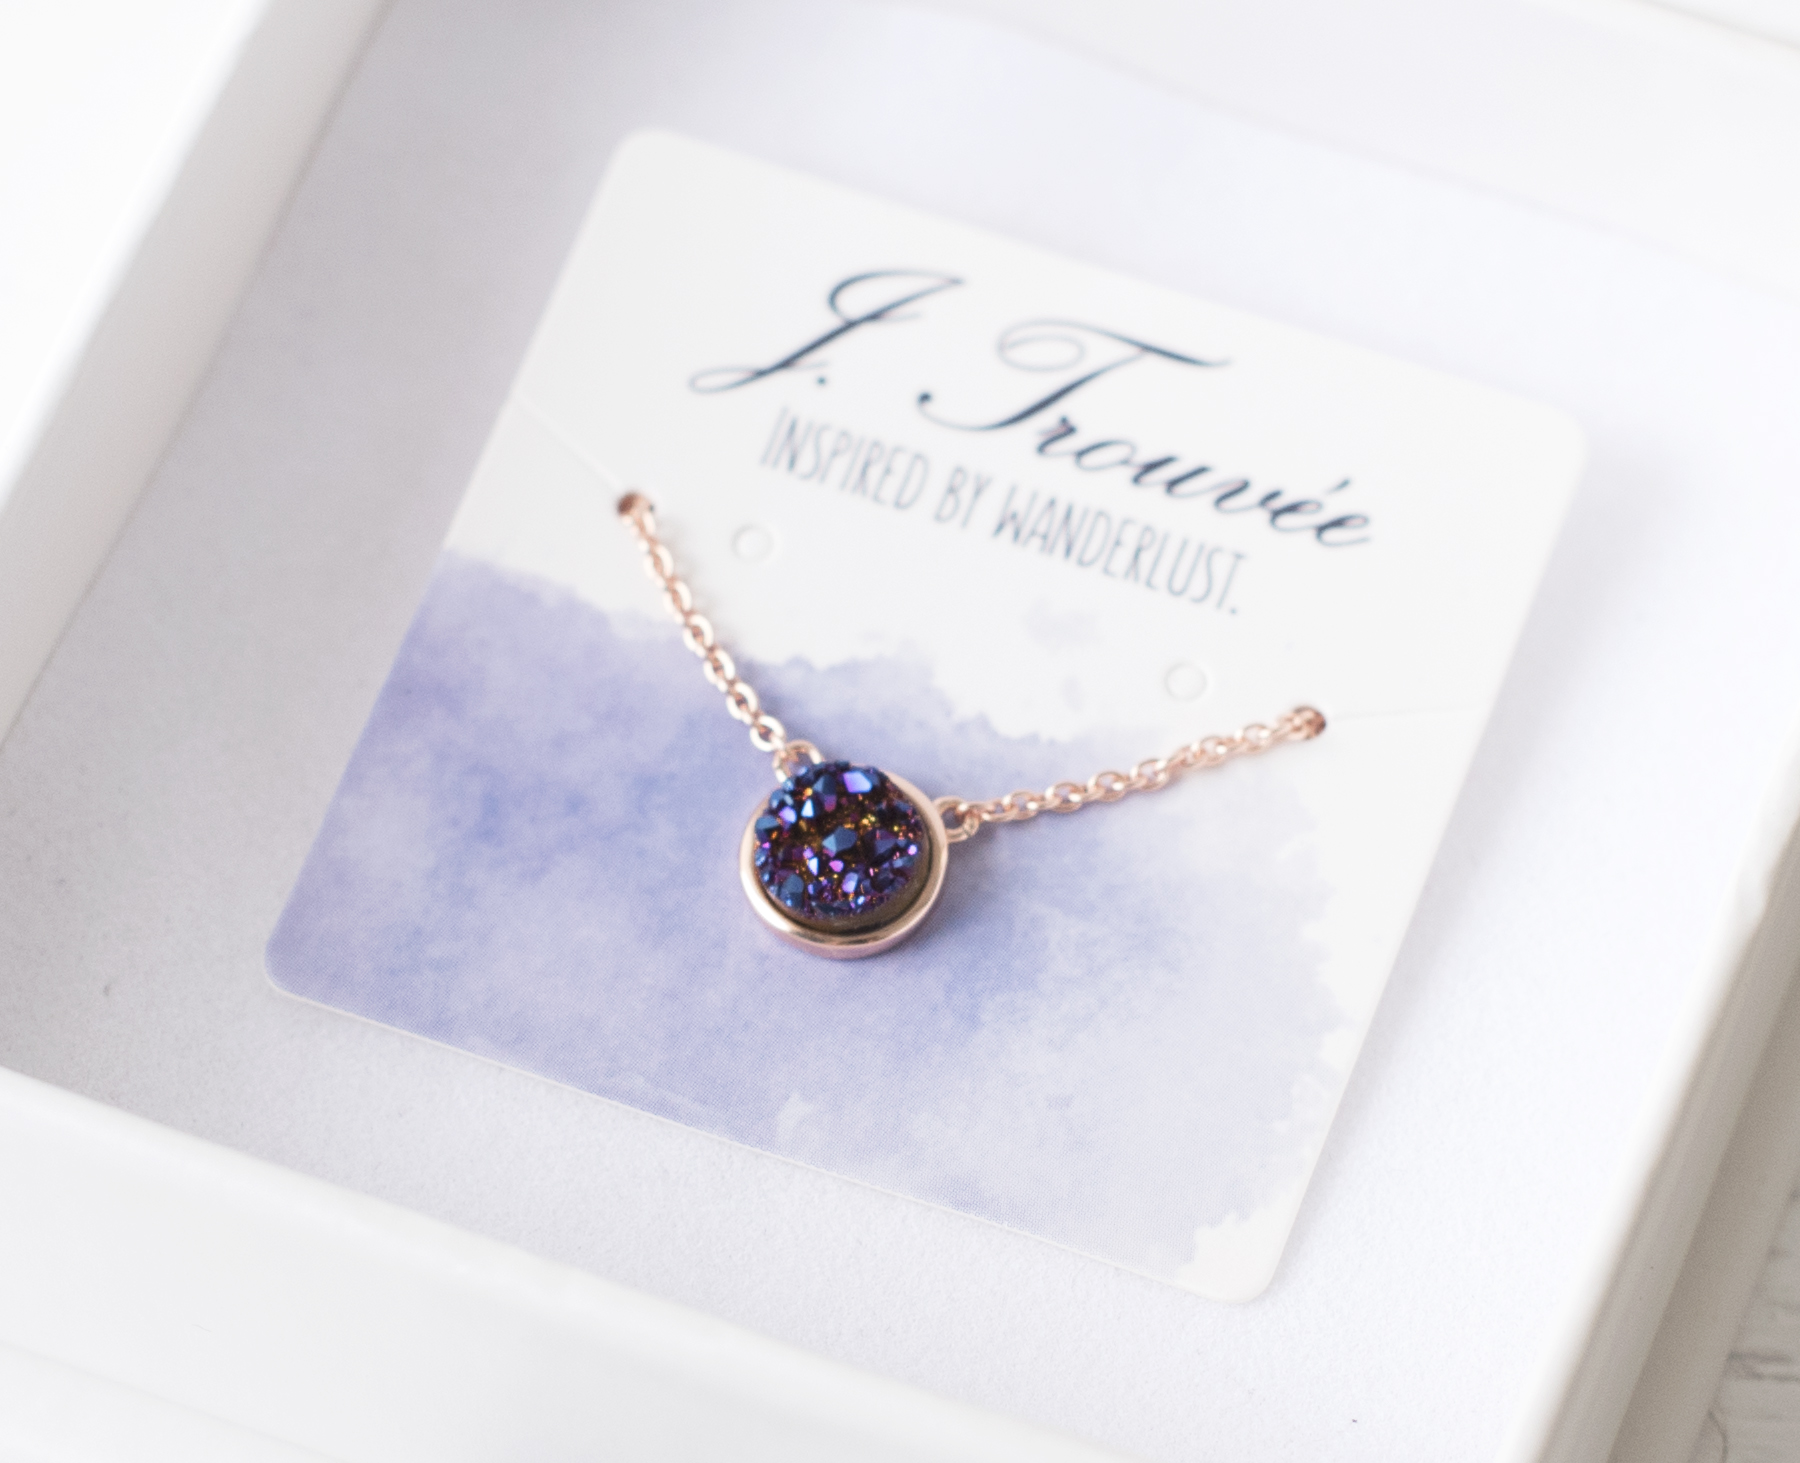 Trouvee.co Gemstone Jewellery